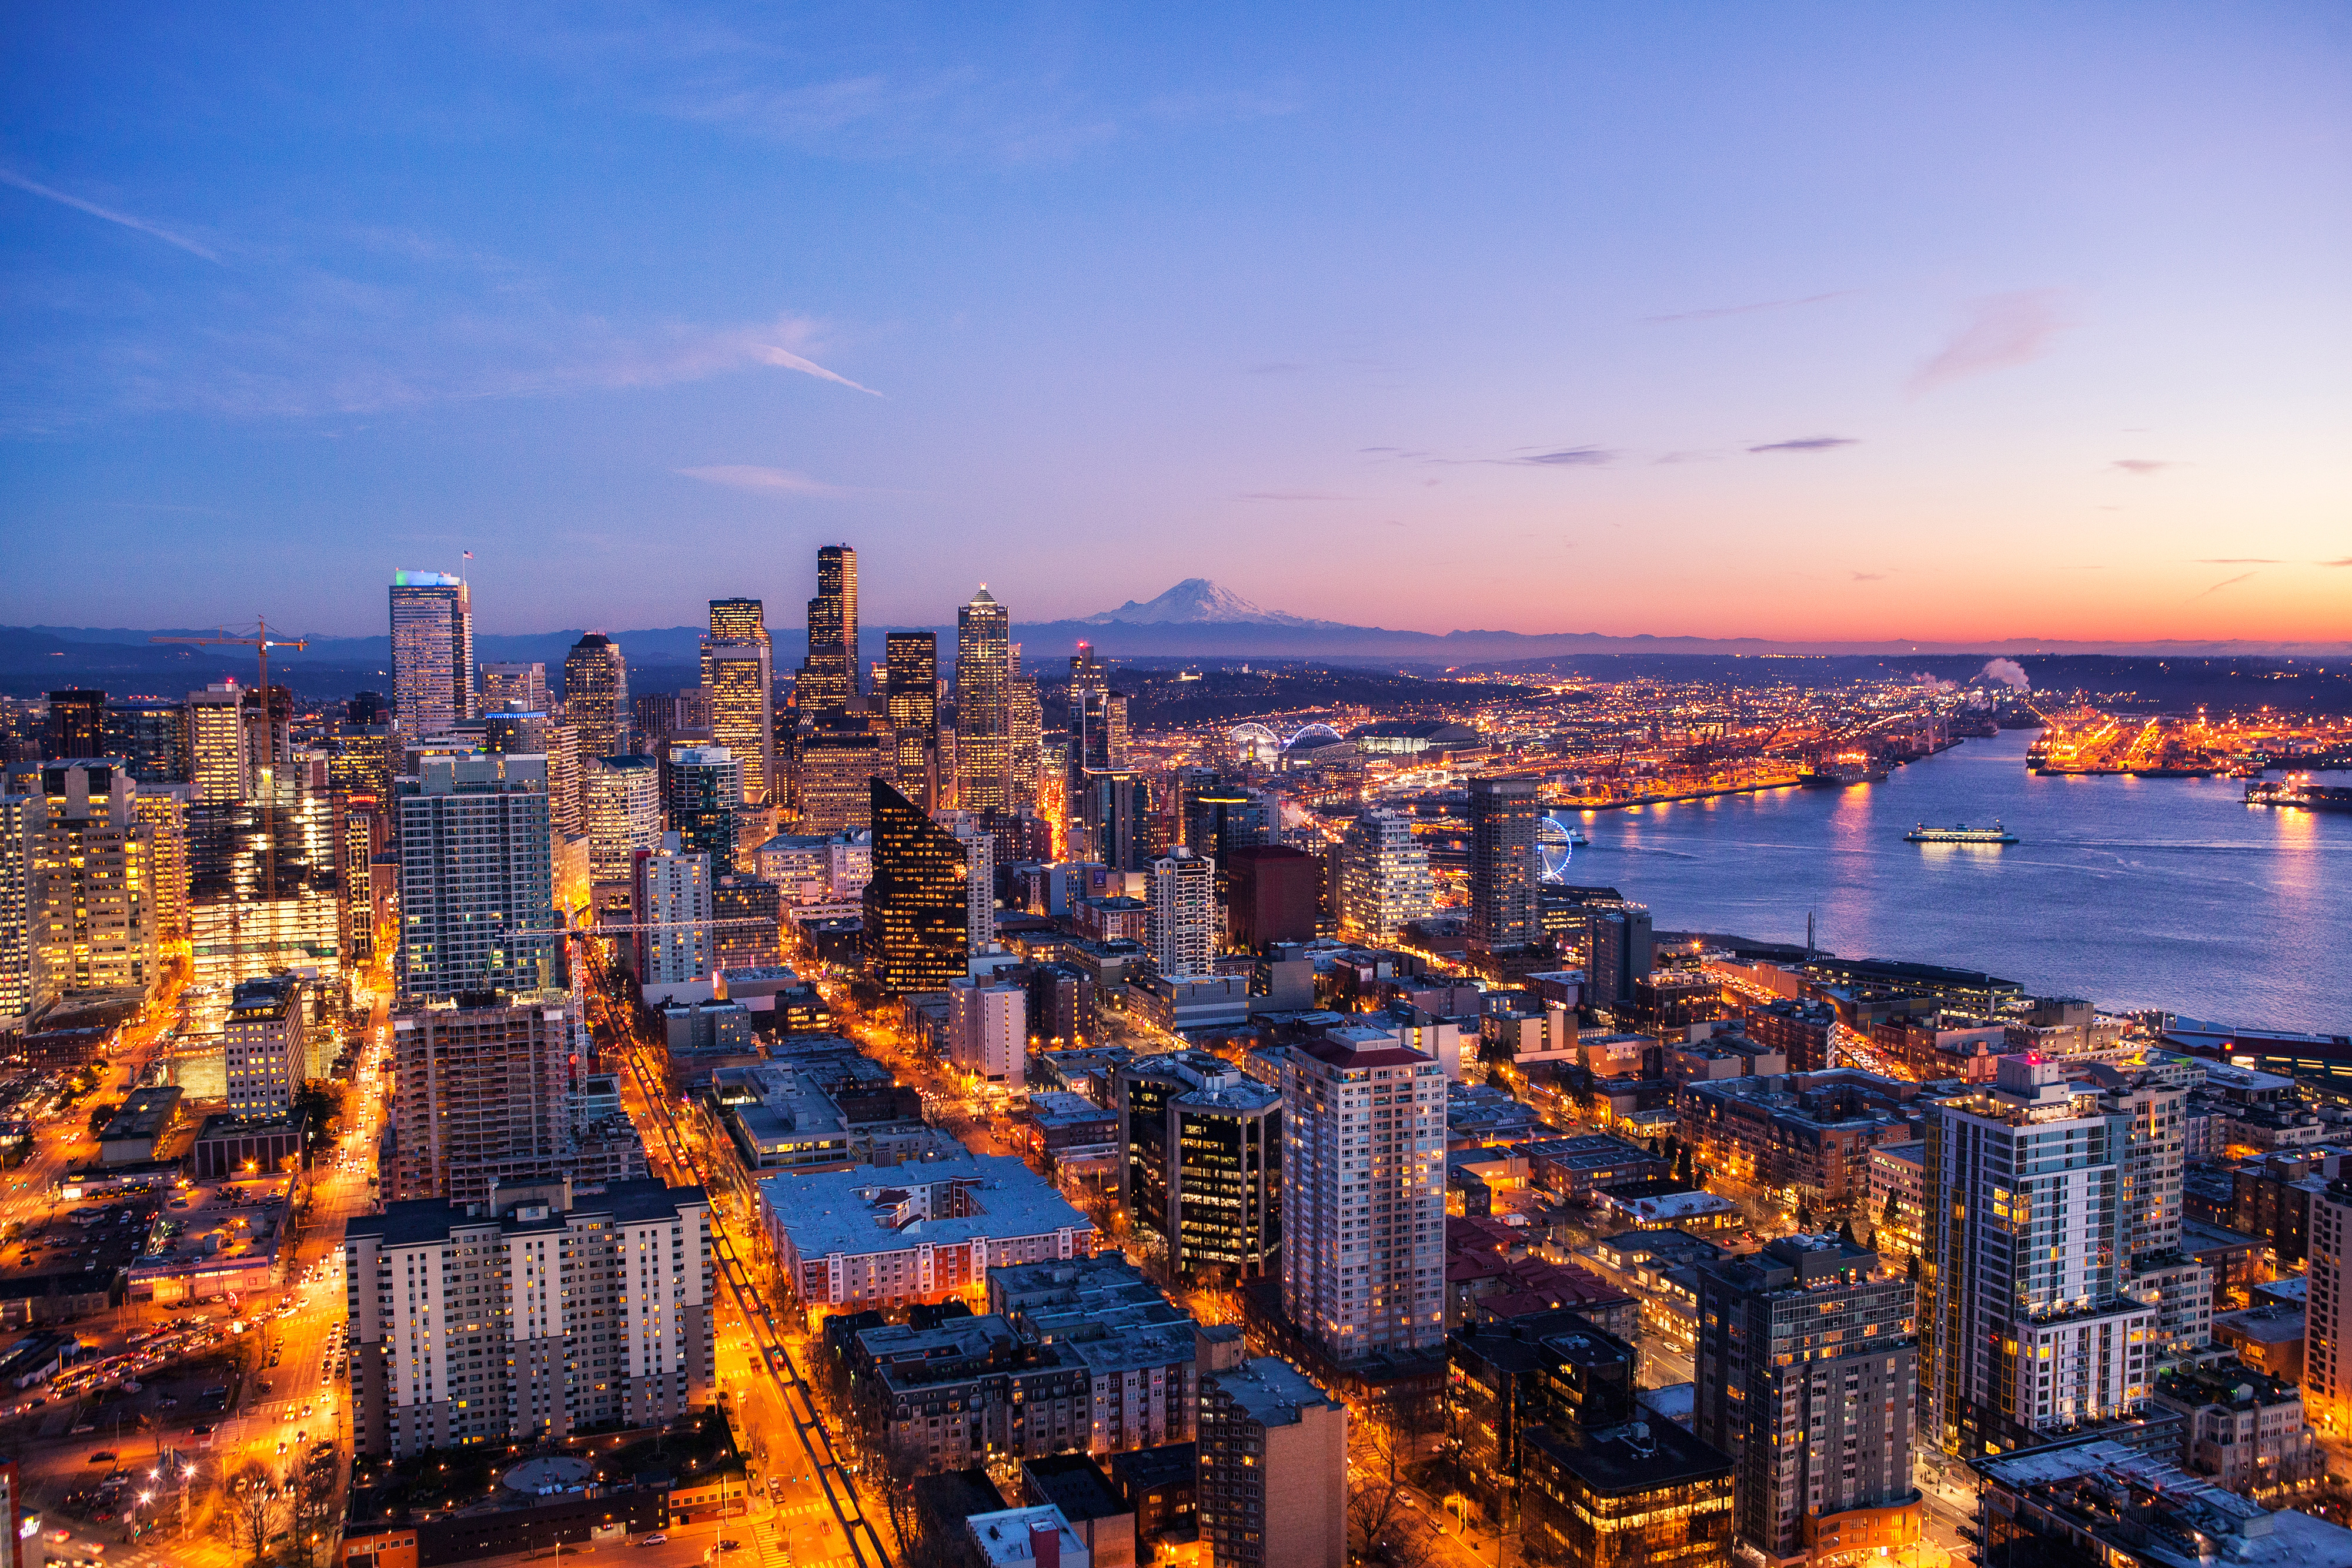 Seattle skyline at night view 4k hd world 4k wallpapers images backgrounds photos and pictures - Background images 4k hd ...